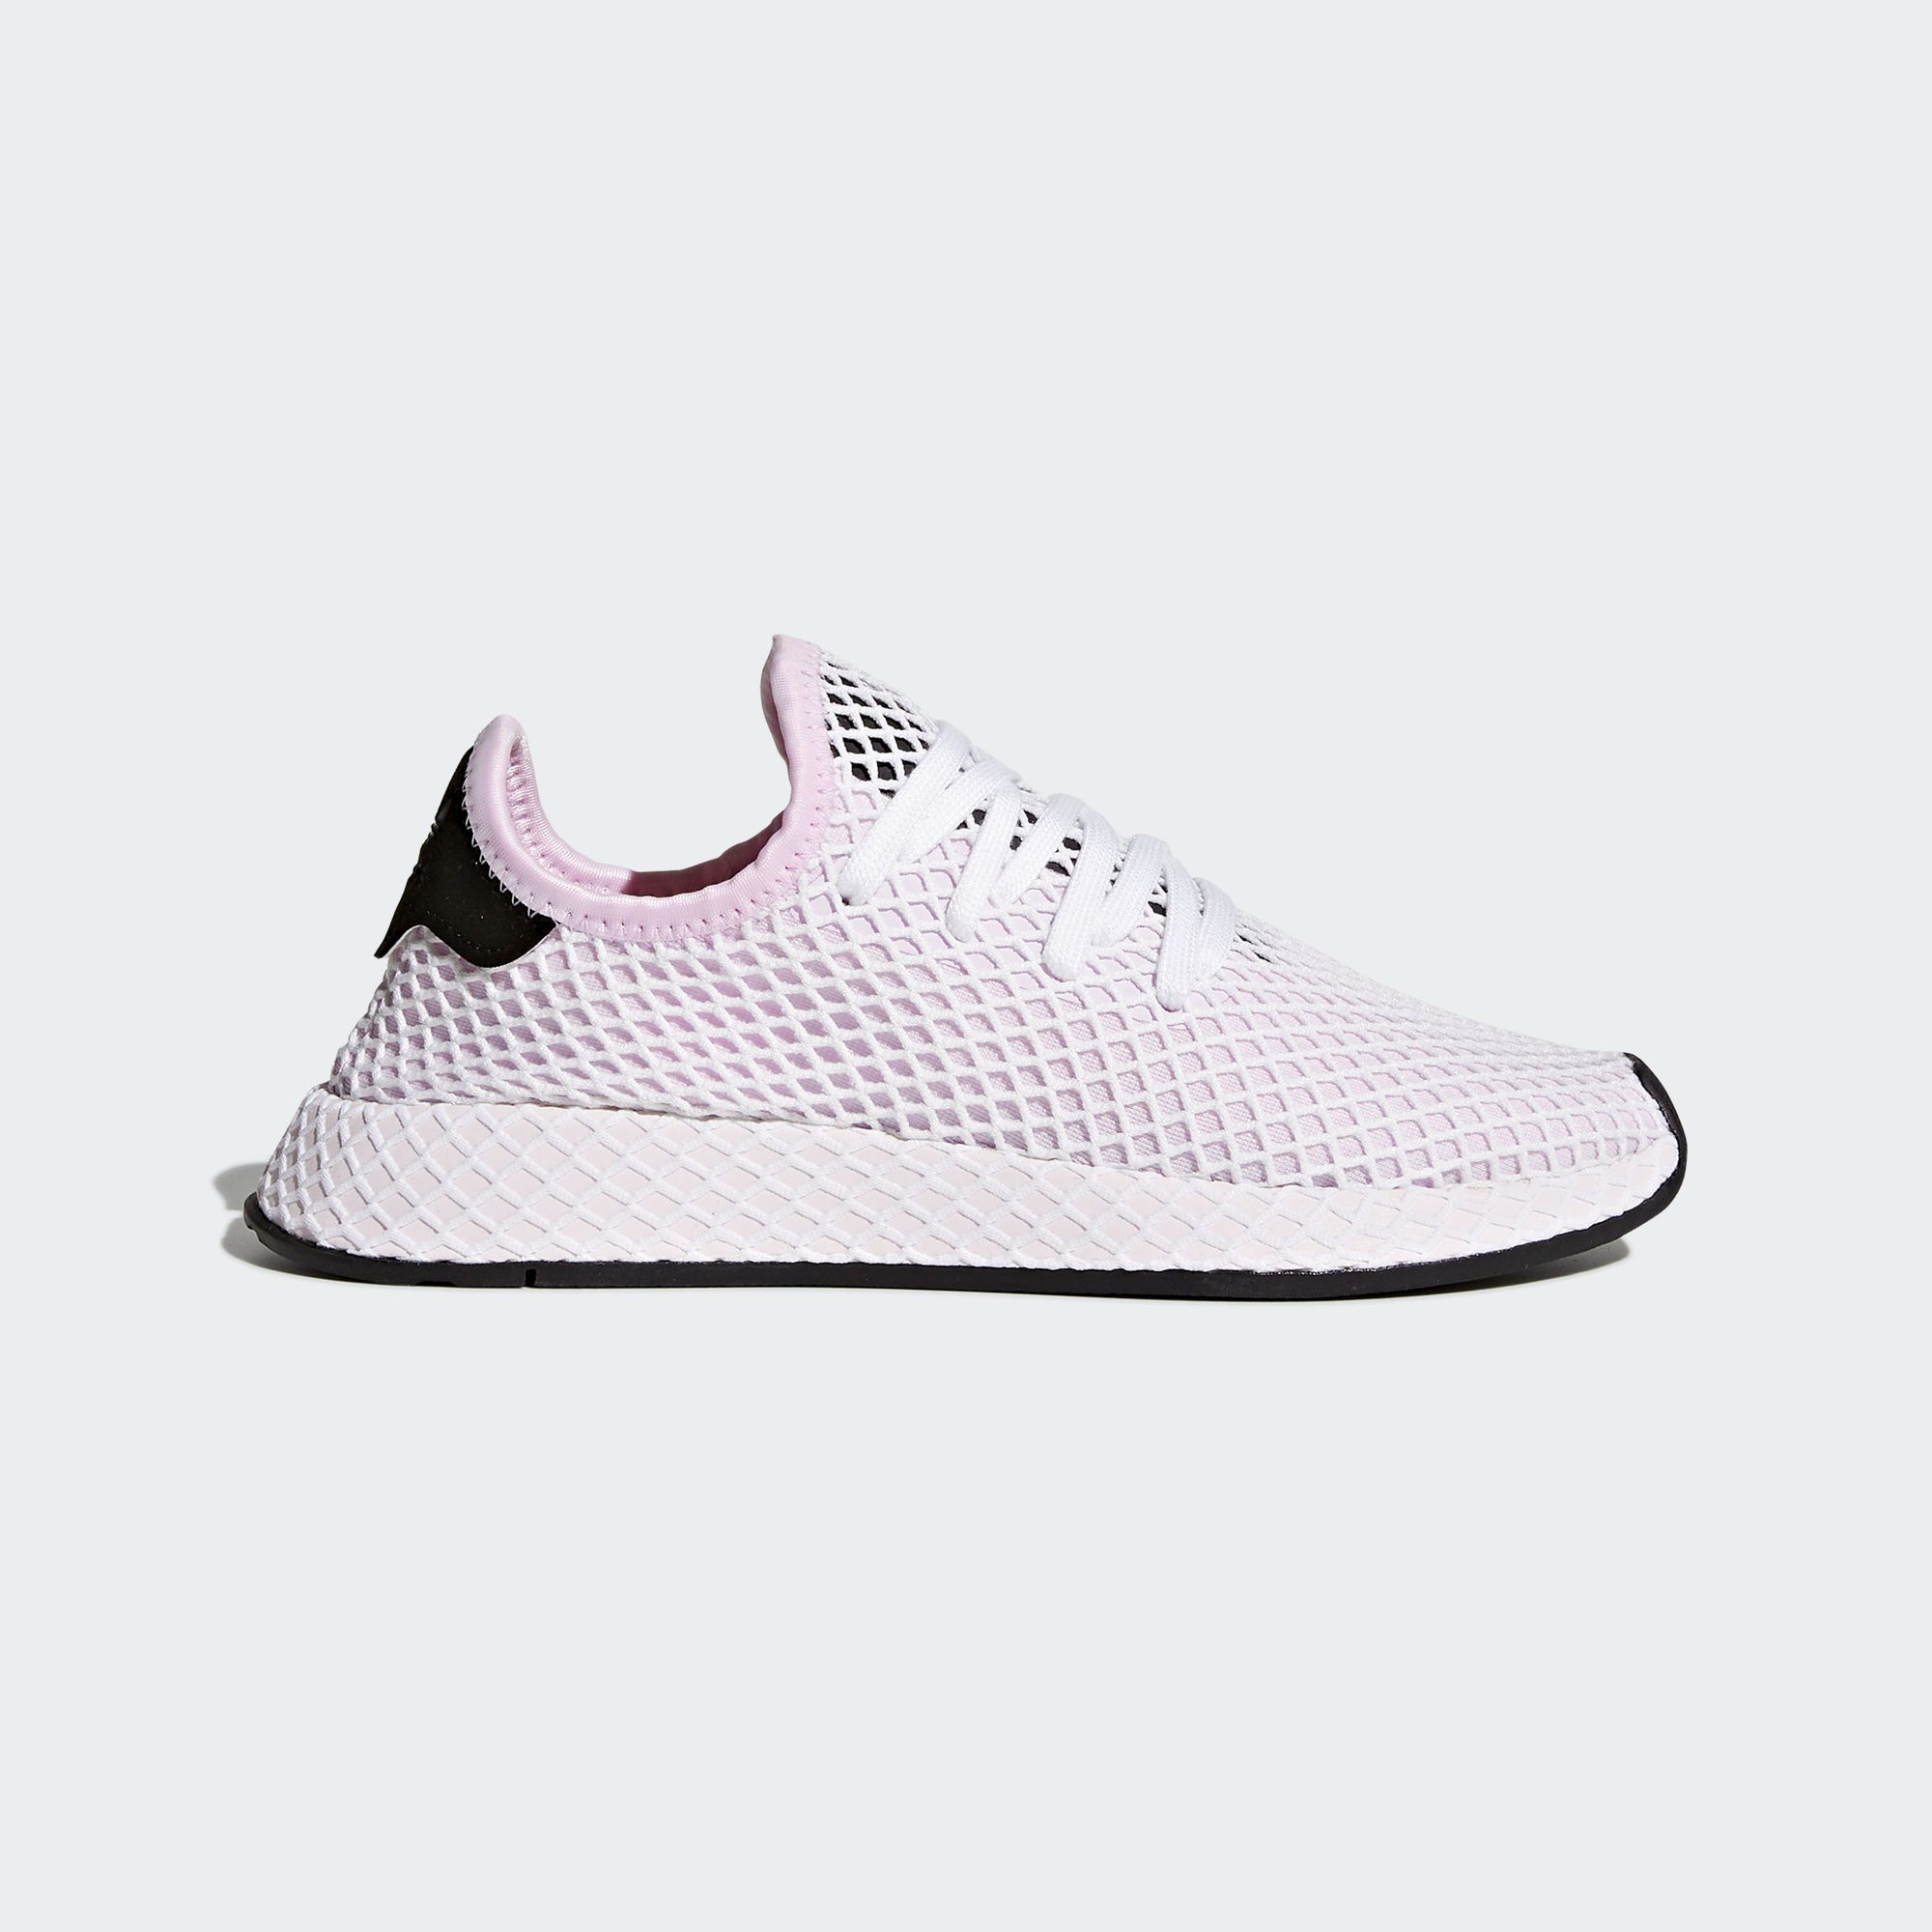 34b2fbb382aa5a Shop the Deerupt Runner Shoes - Pink at adidas.com us! See all the styles  and colors of Deerupt Runner Shoes - Pink at the official adidas online  shop.